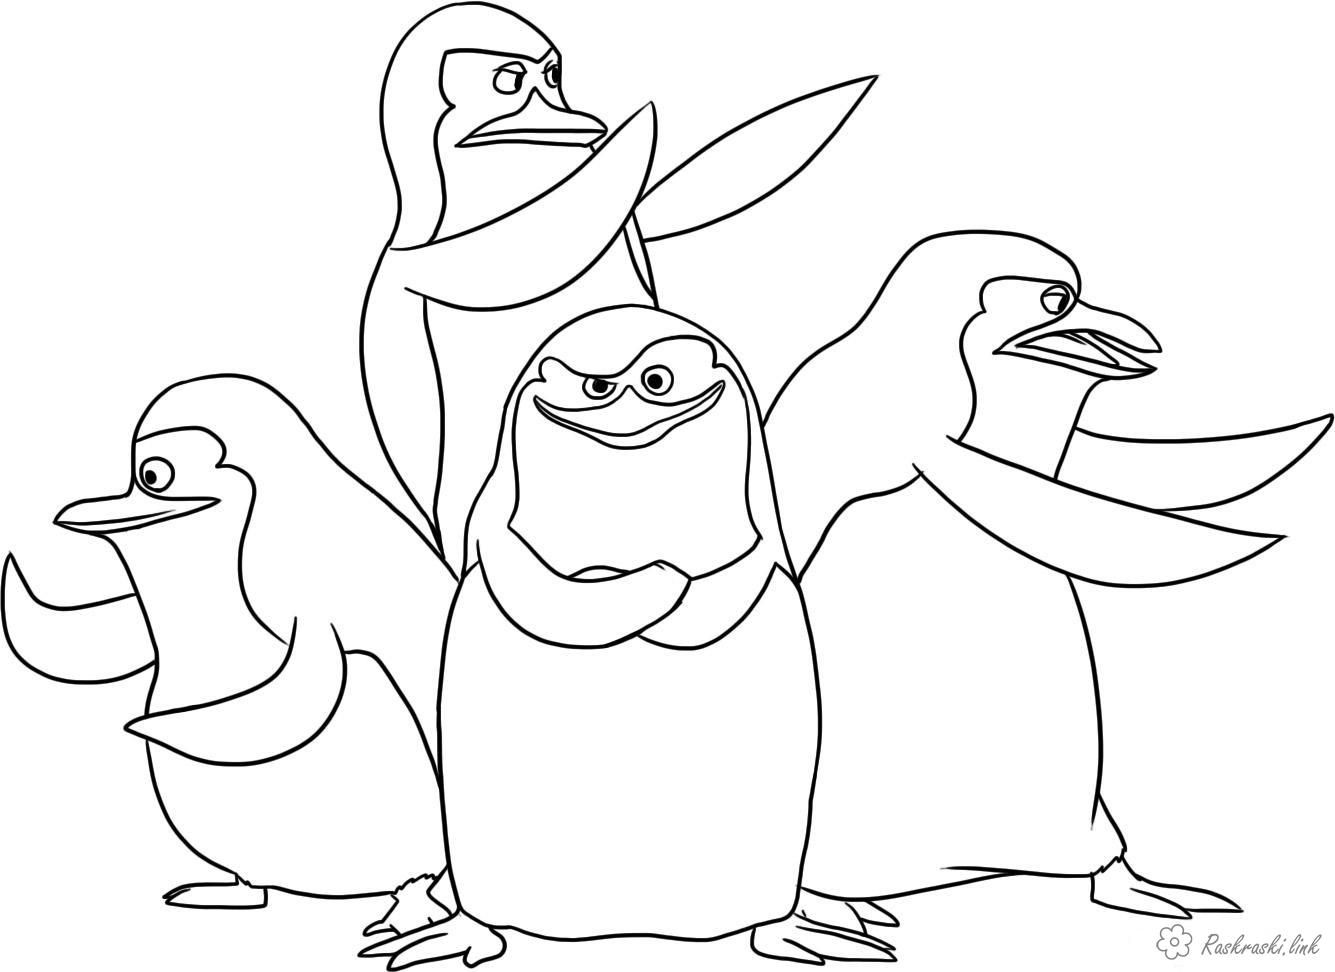 Coloring The Penguins of Madagascar coloring pages cartoons coloring pages Penguins of Madagascar Penguins